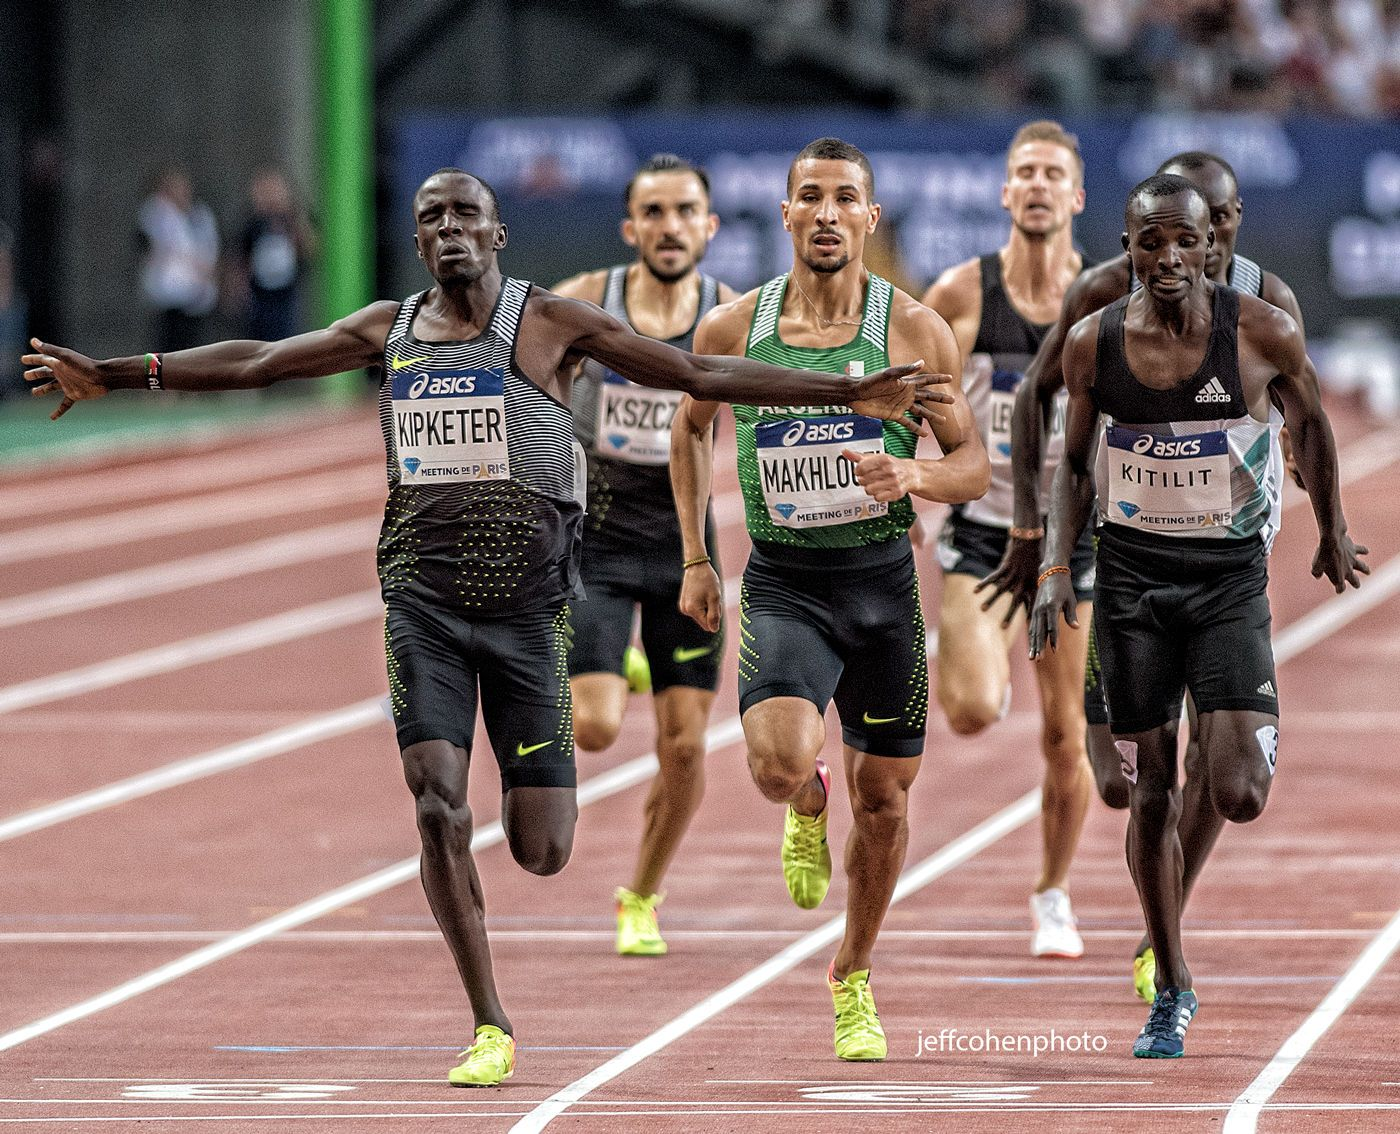 1r2016_meeting_de_paris_alfred_kipketer_800m_jeff_cohen_photo_827_web.jpg